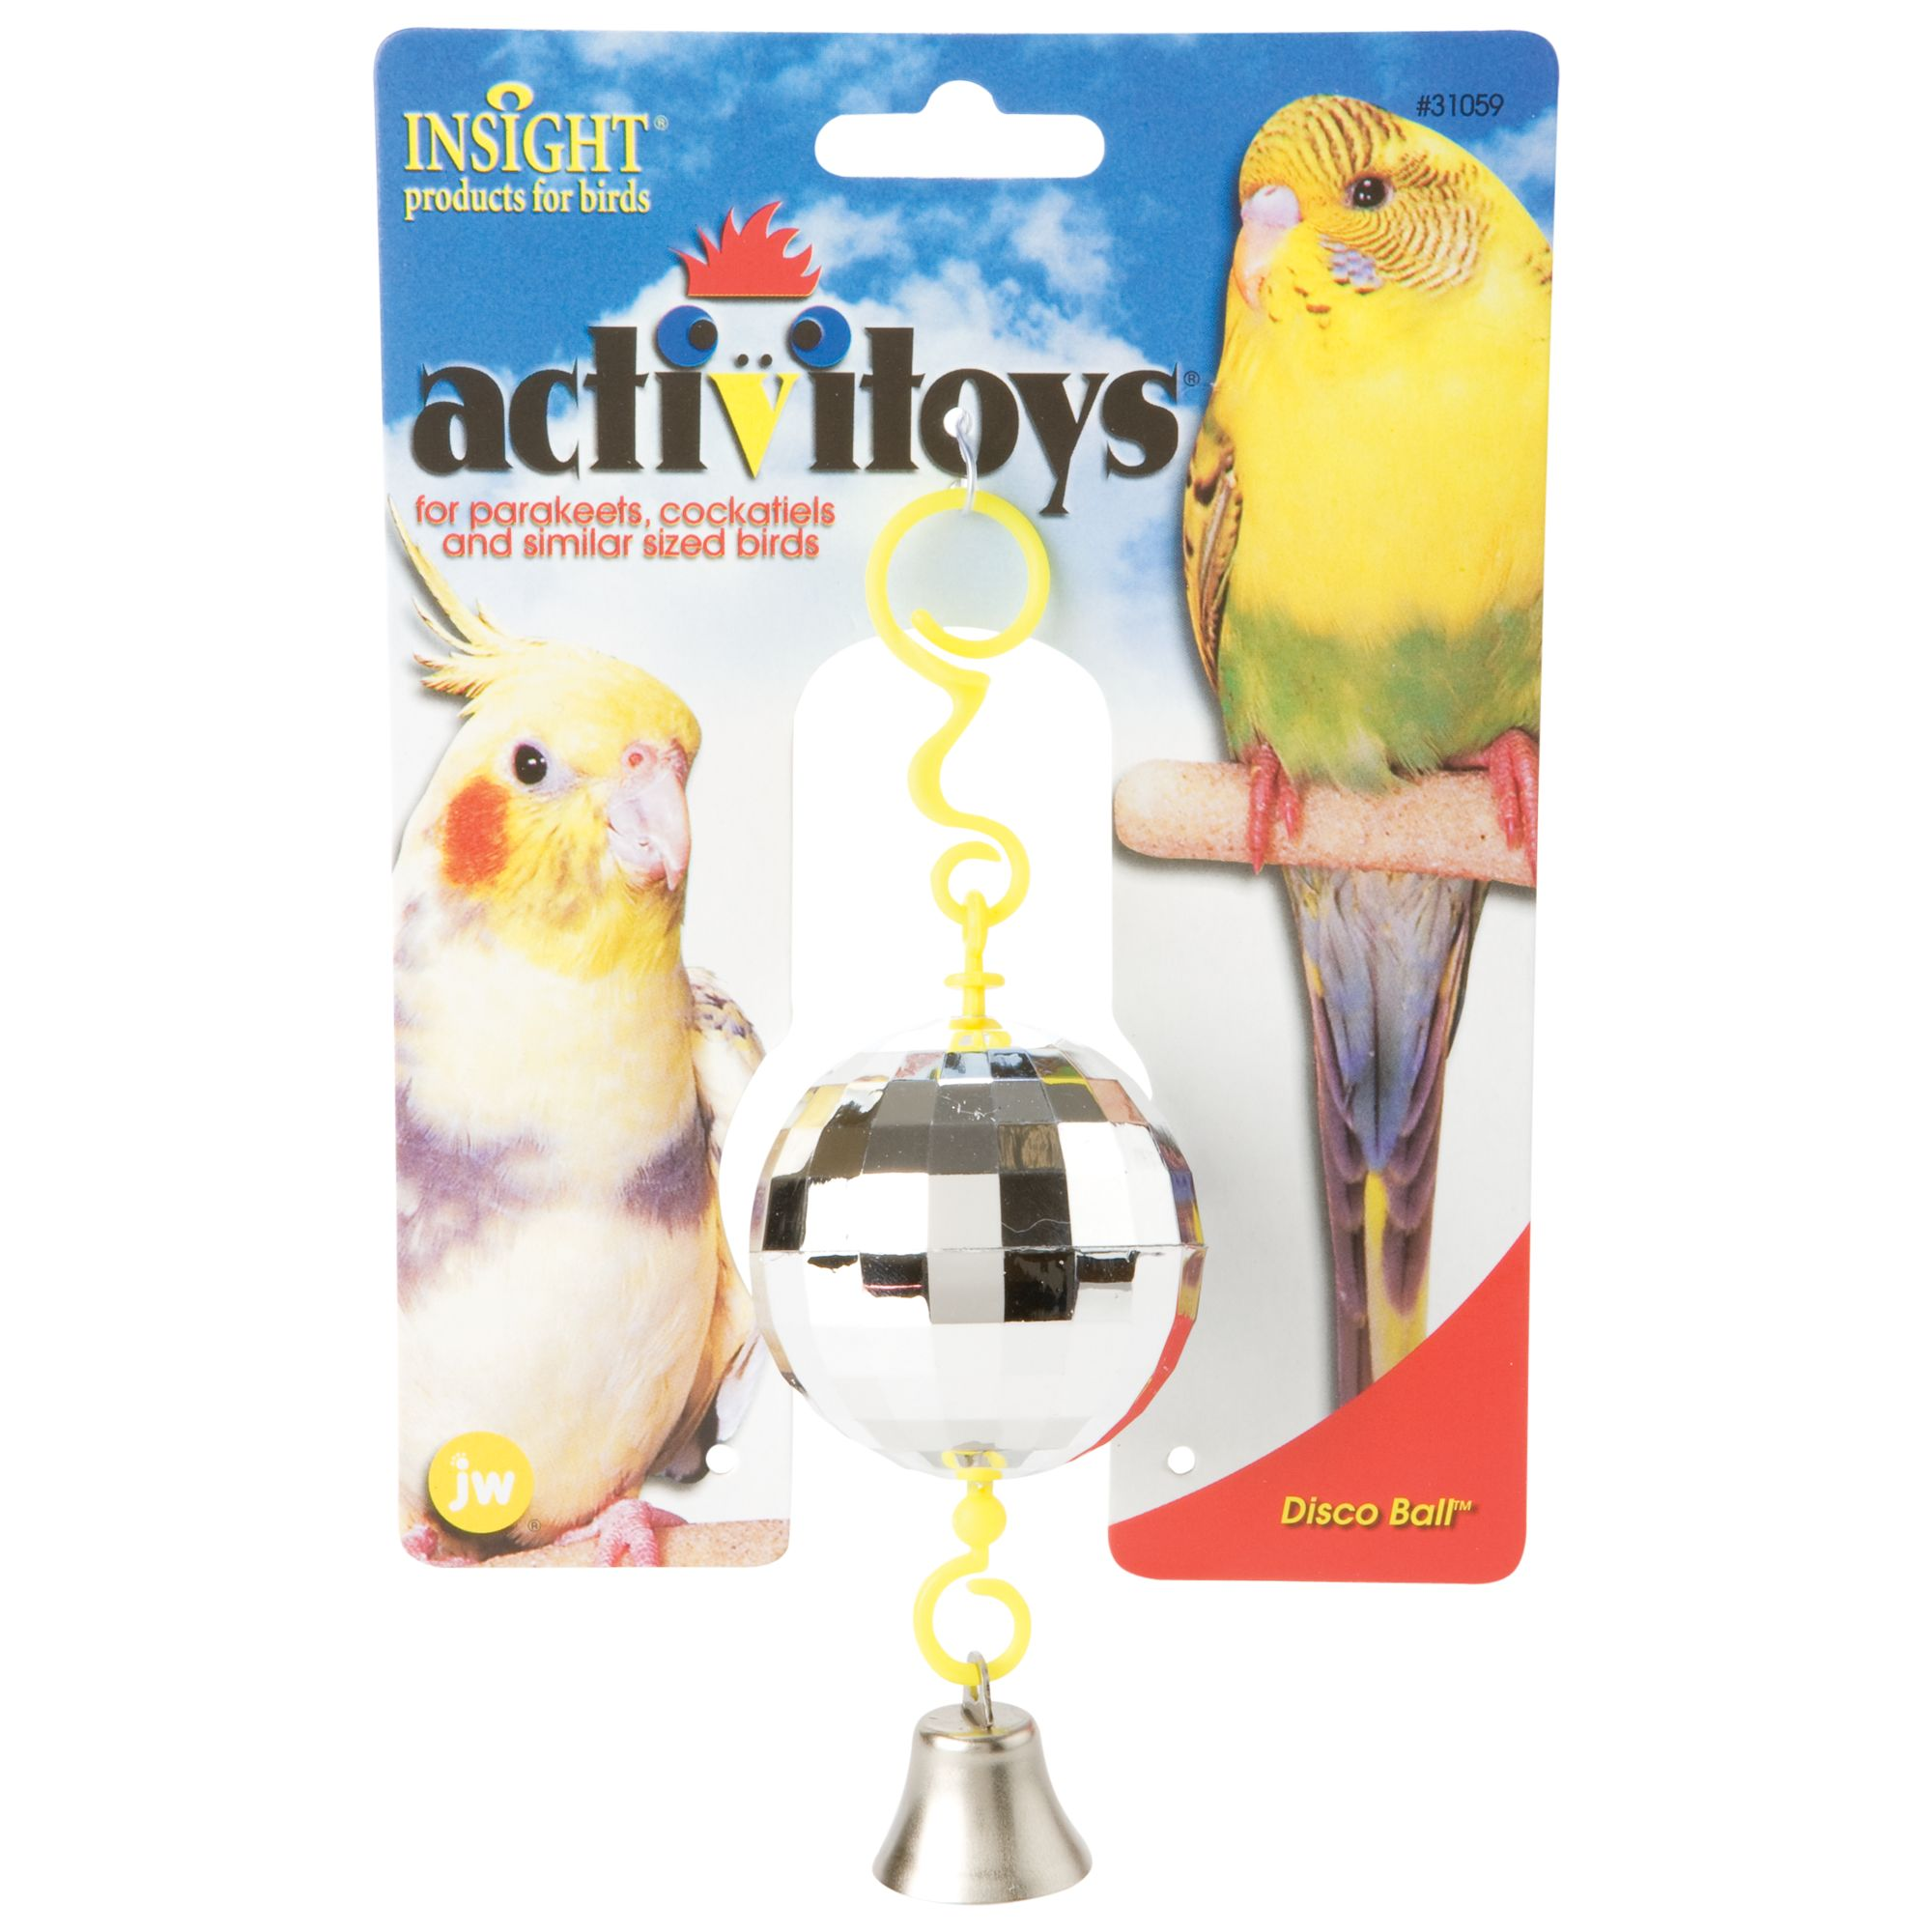 JW Pet Insight Activitoys Disco Ball Bird Toy 5127725